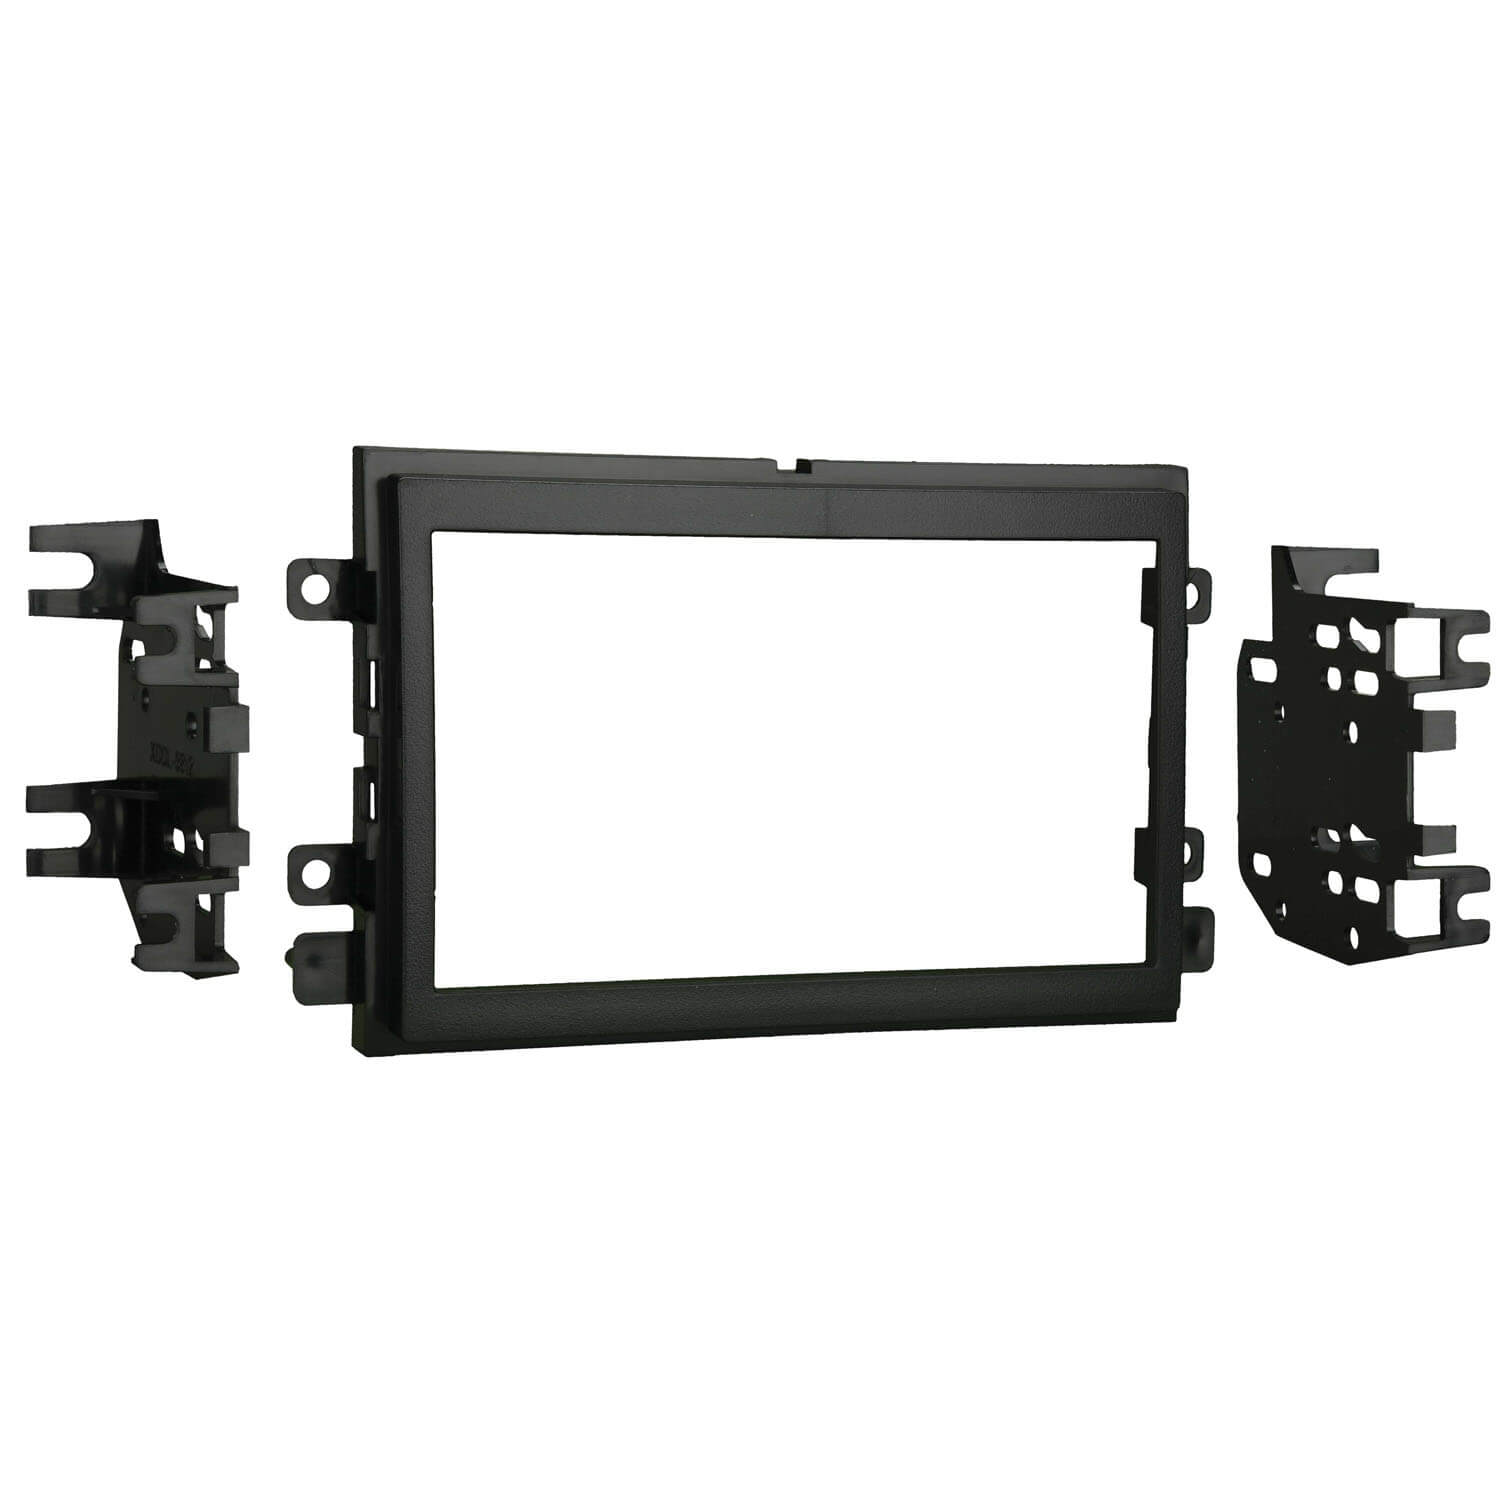 Double Din Installation Kit for 2006 F250